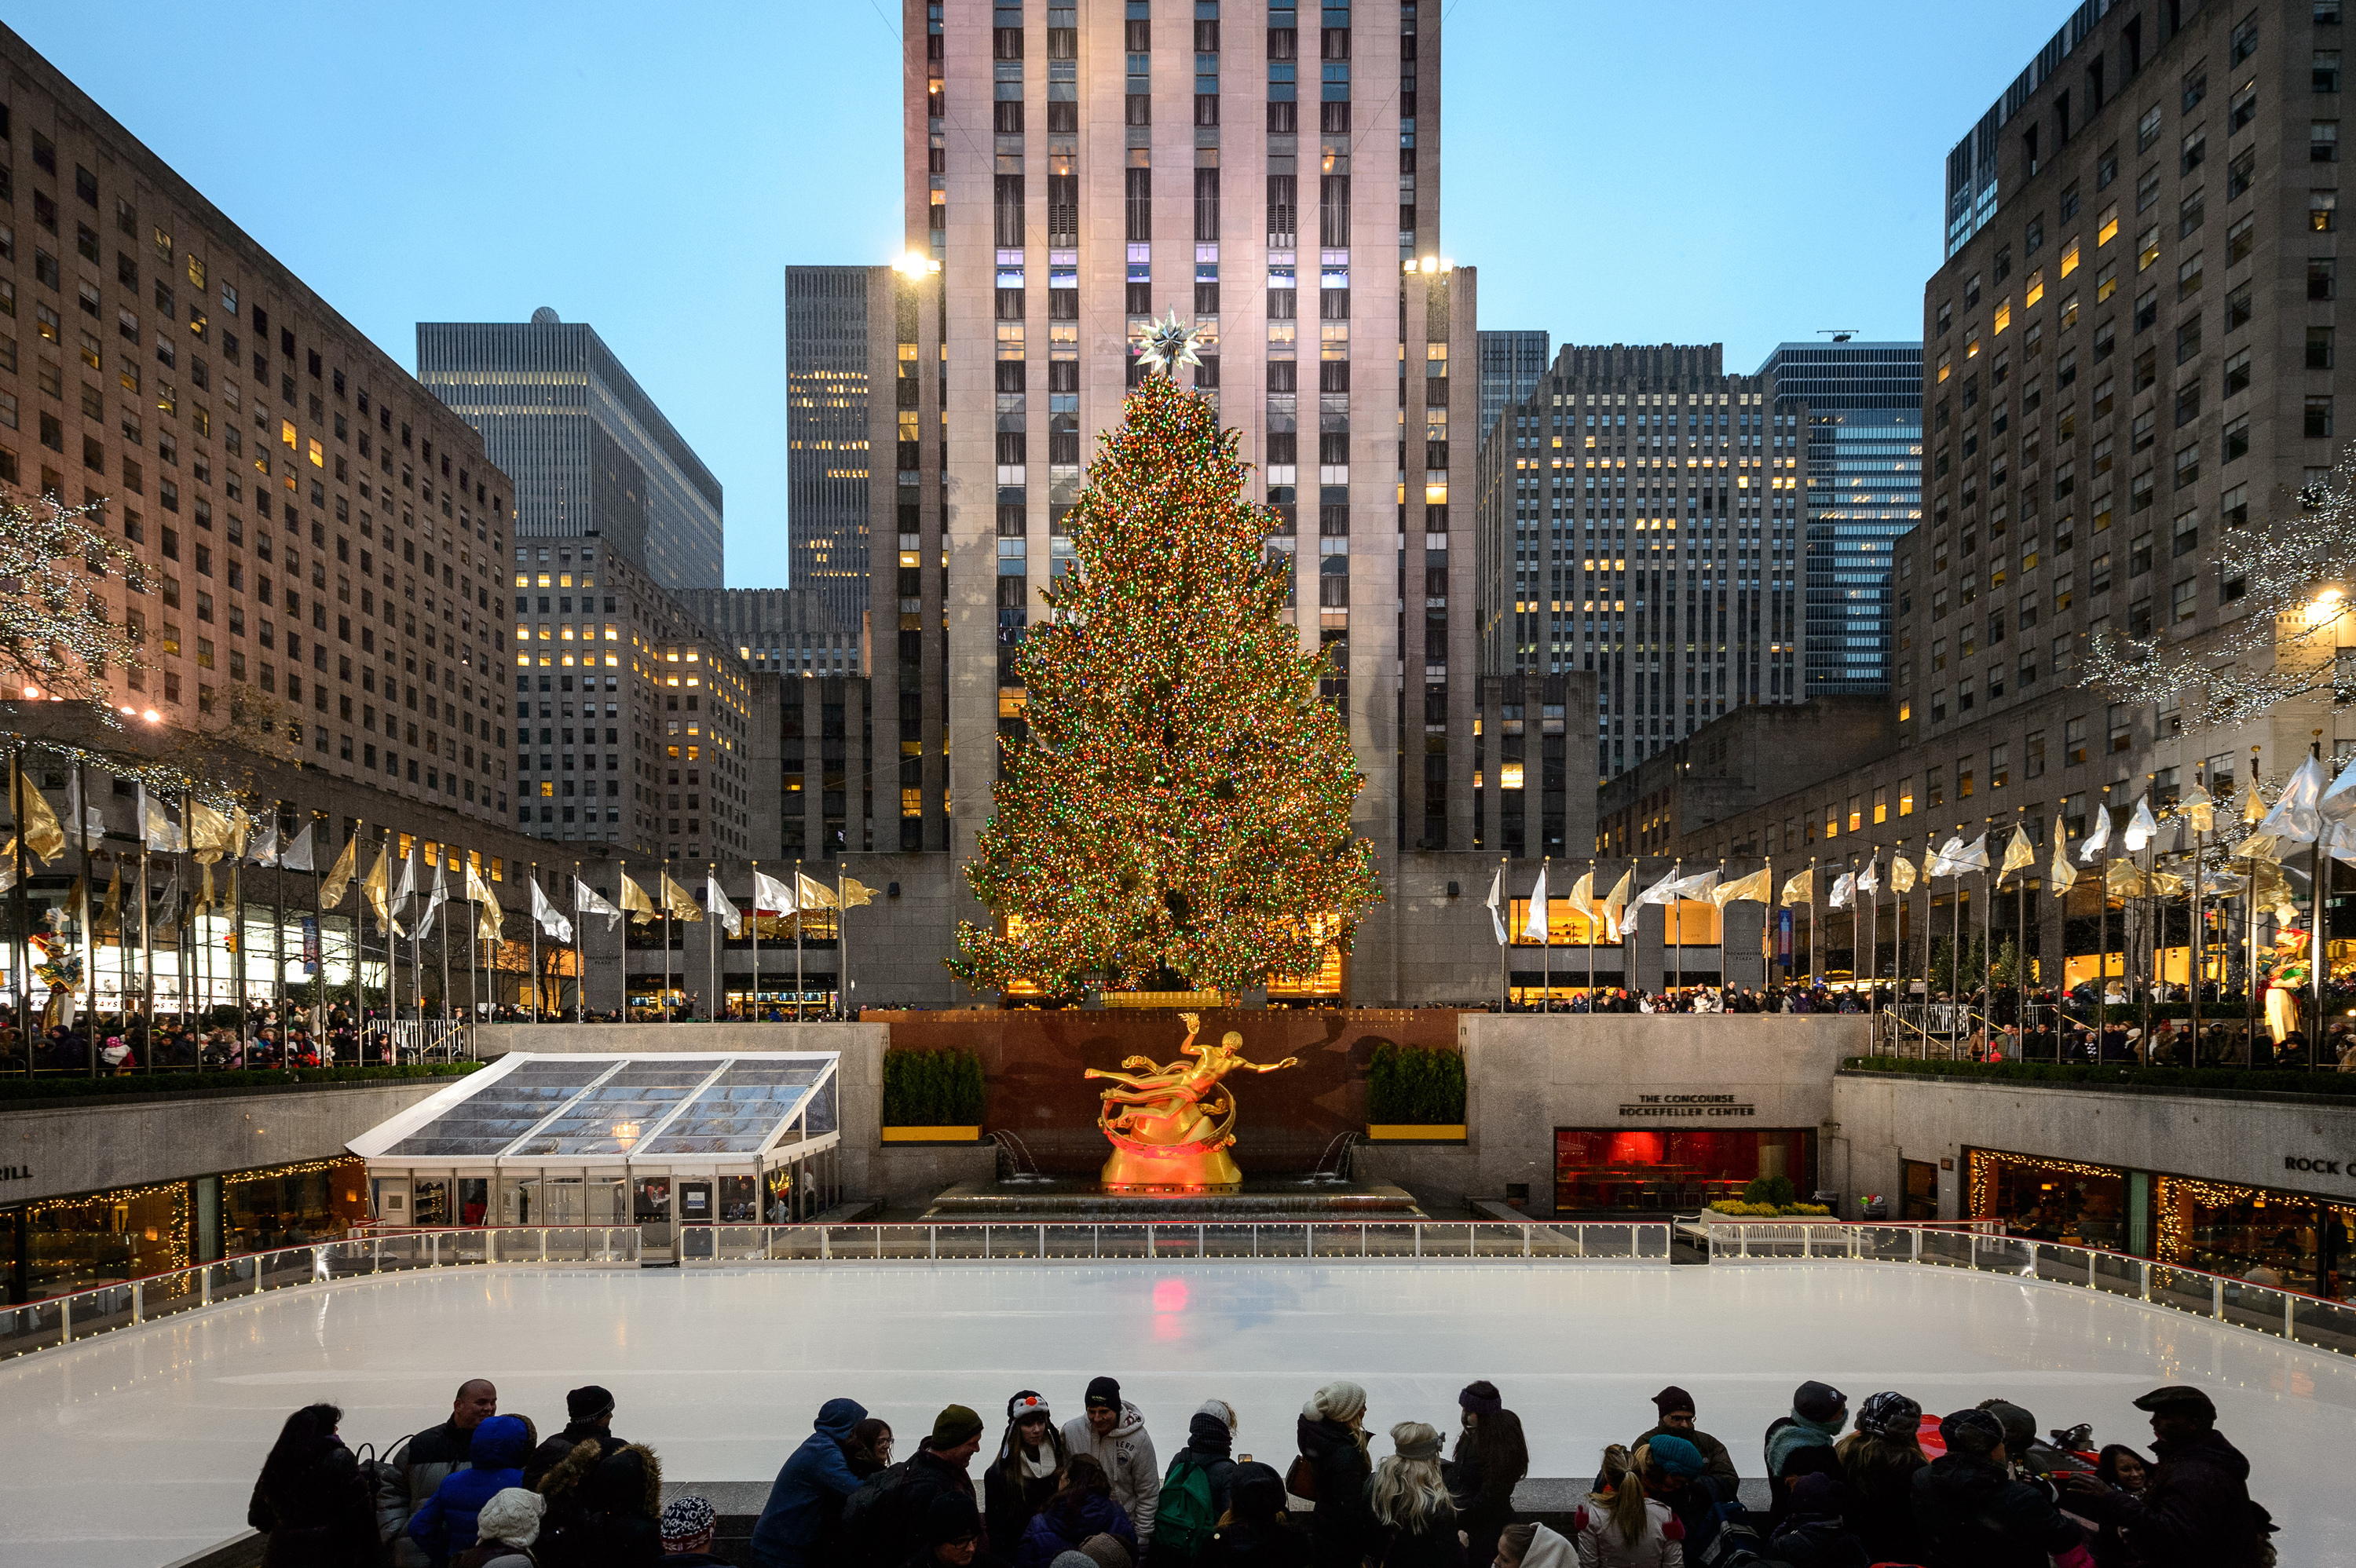 Geroma Weihnachtsbaum.The Rink At Rockefeller Center Things To Do In Midtown West New